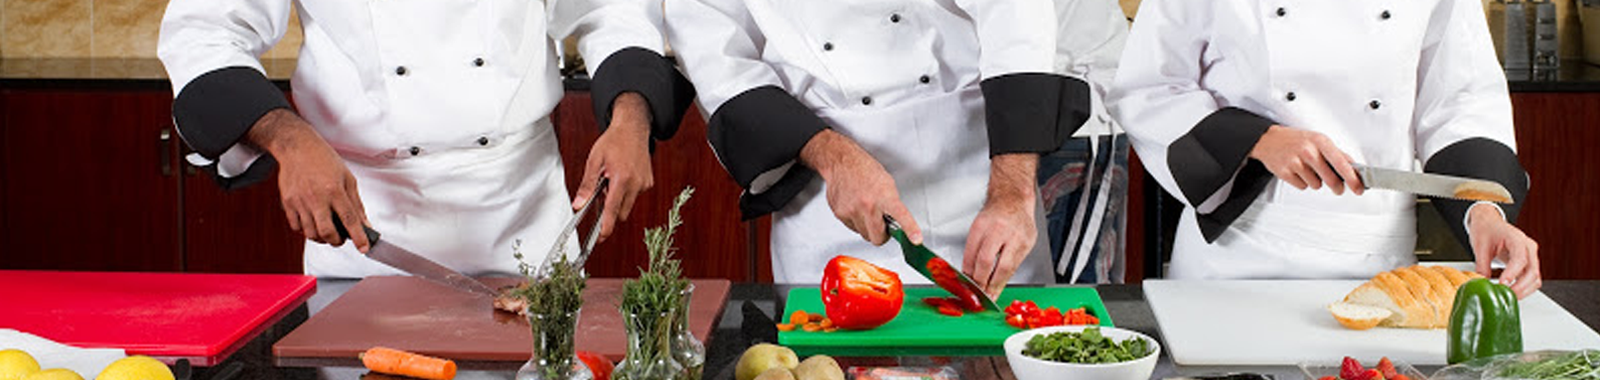 High quality chefs wear